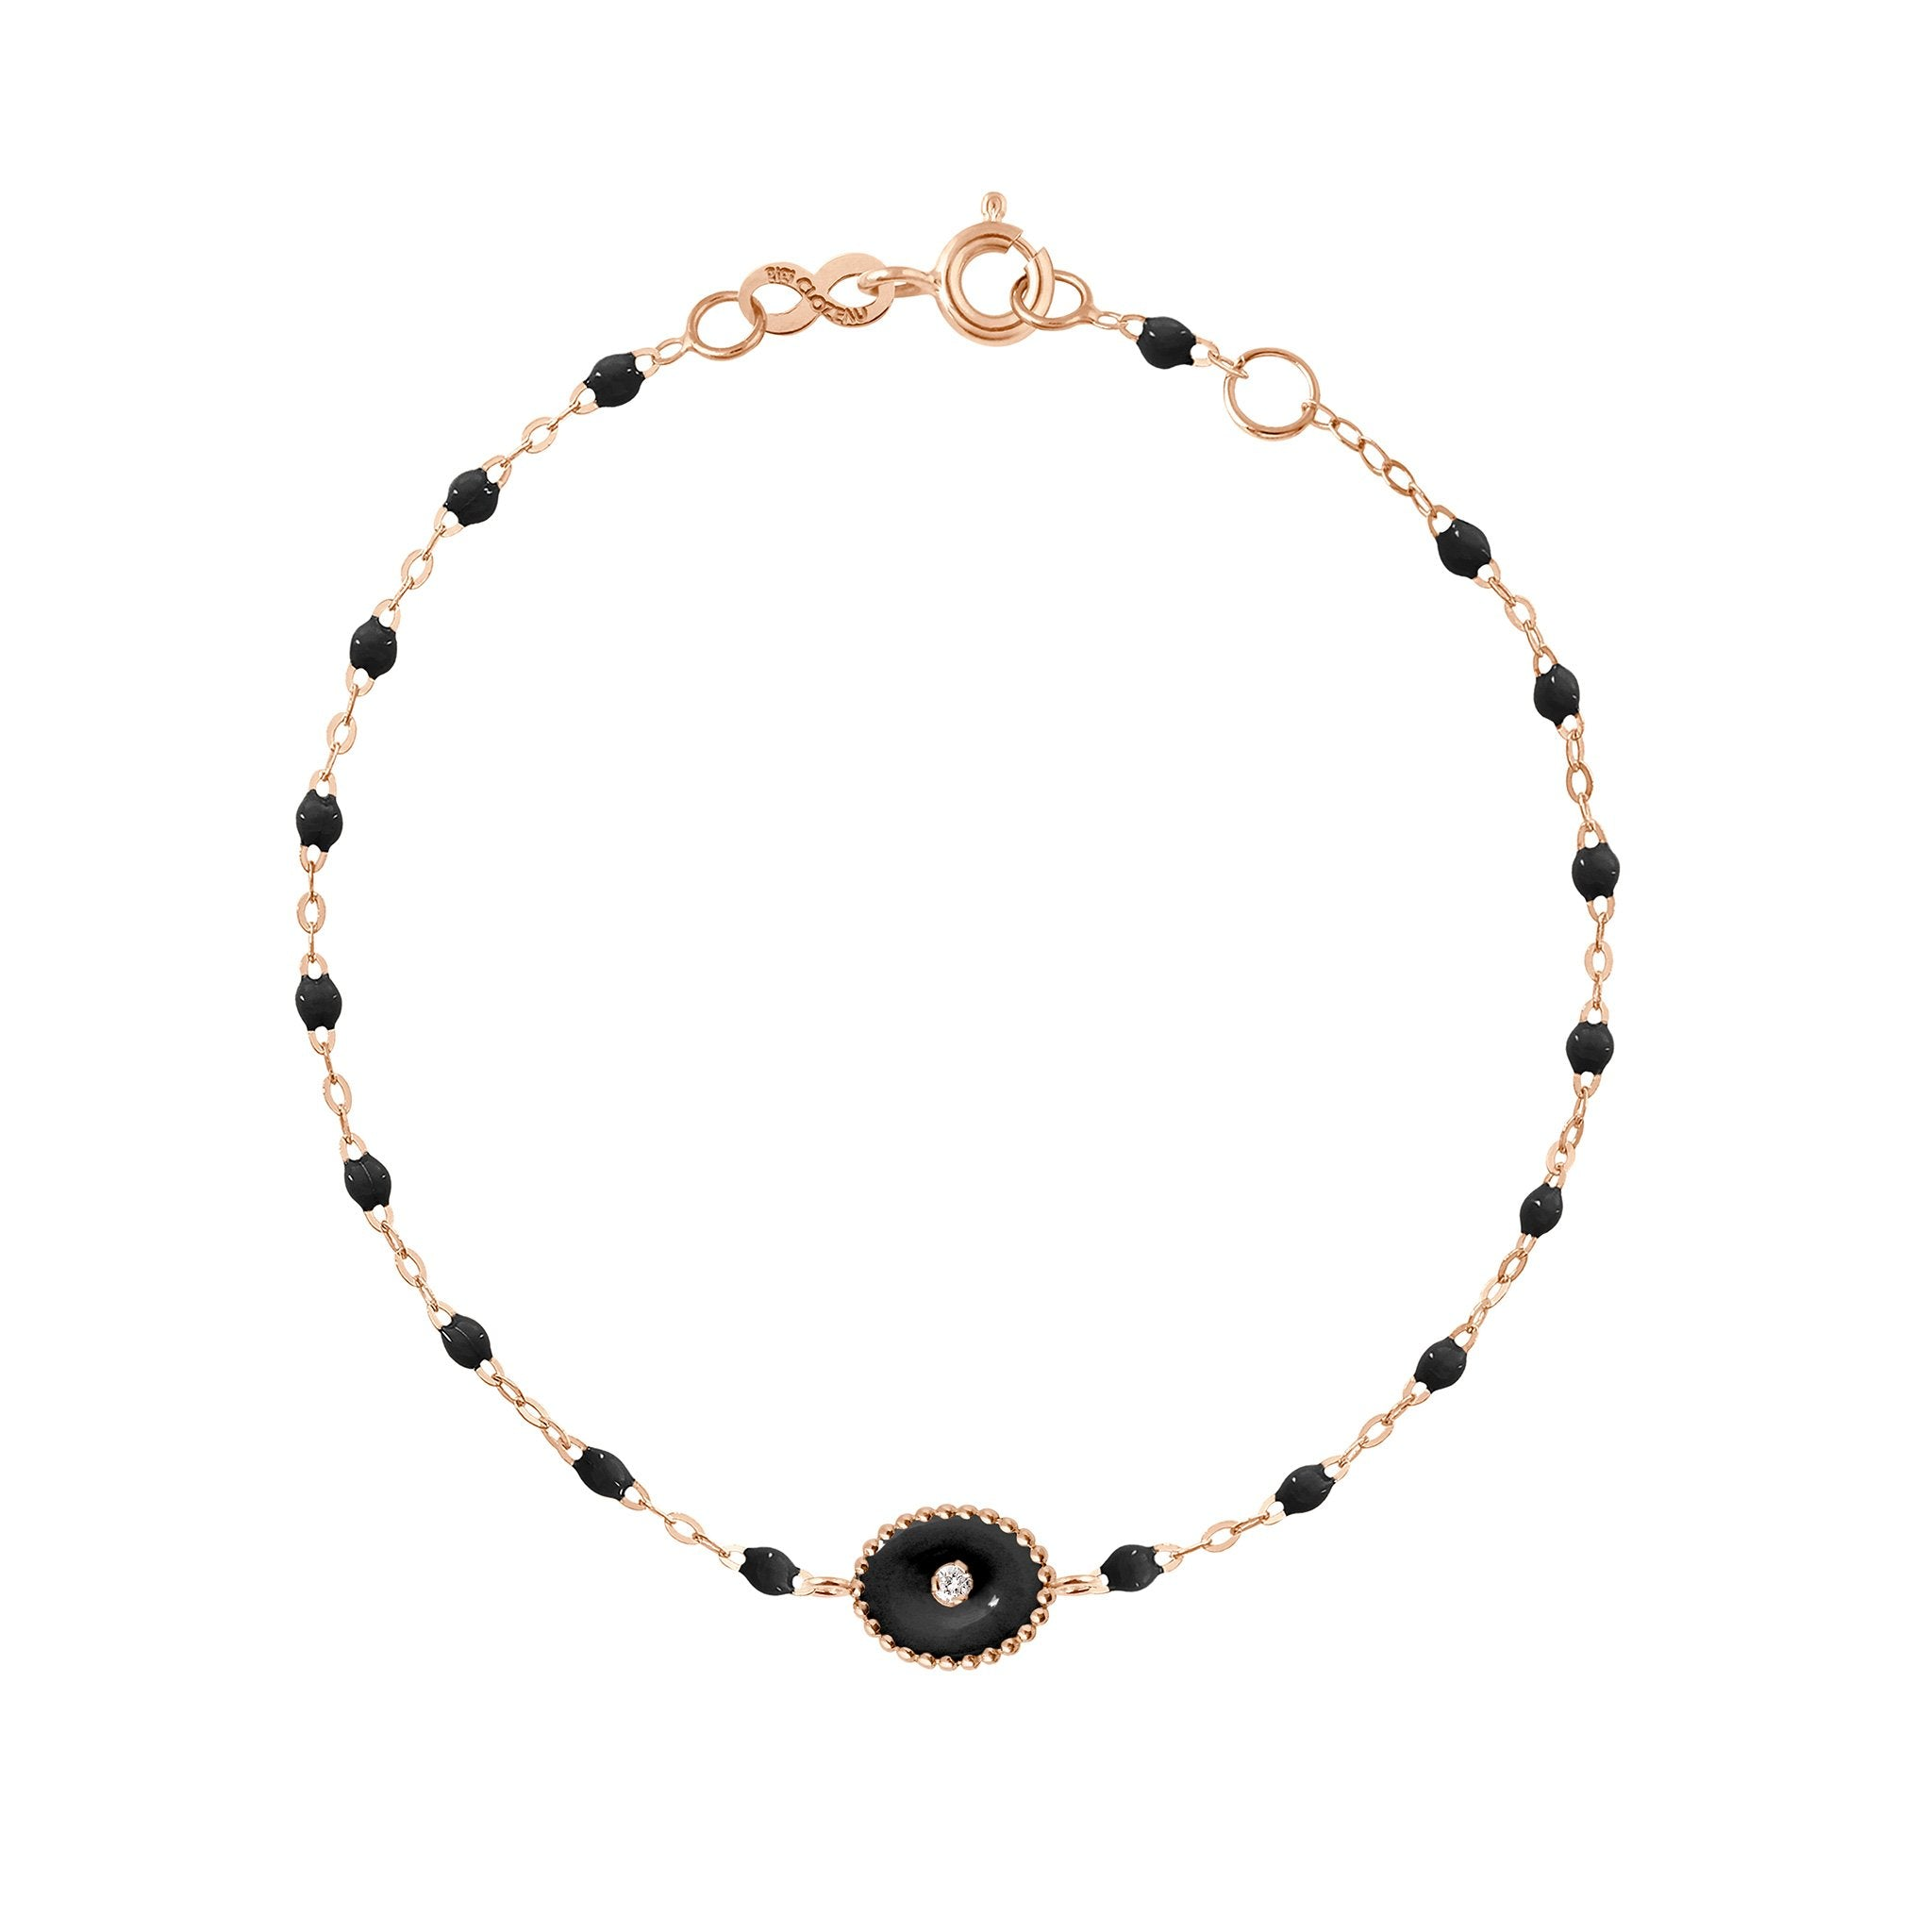 Gigi Clozeau - North Star Classic Gigi Black diamond bracelet, Rose Gold, 6.7""